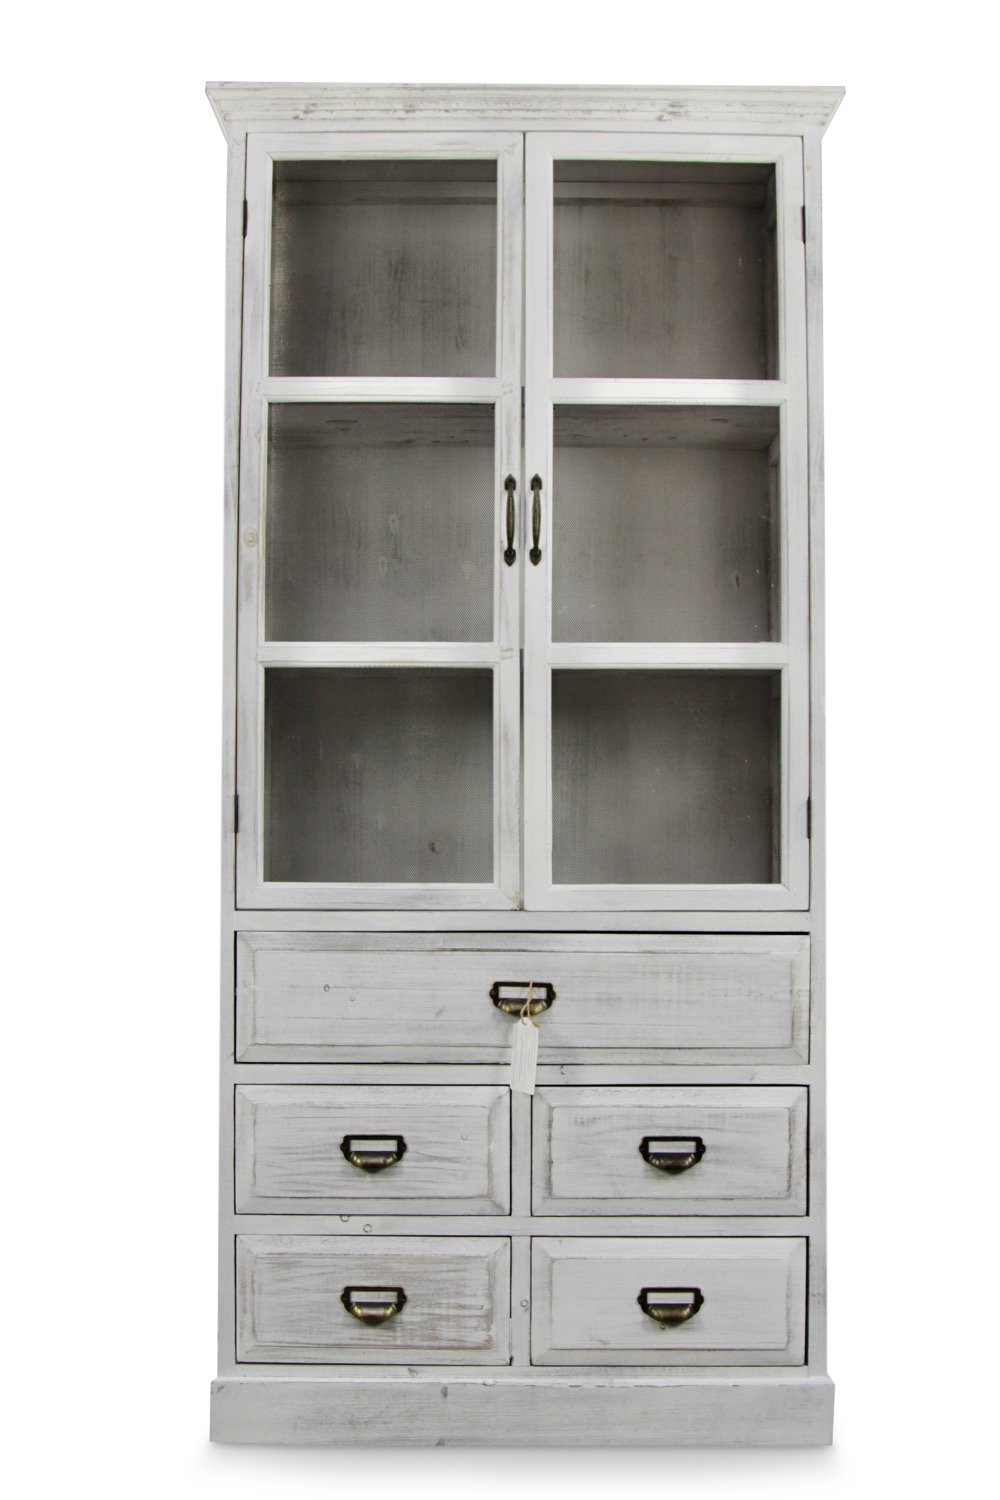 buffet vaisselier rangement bois 5 tiroirs ceruse blanc 81x35x169cm. Black Bedroom Furniture Sets. Home Design Ideas